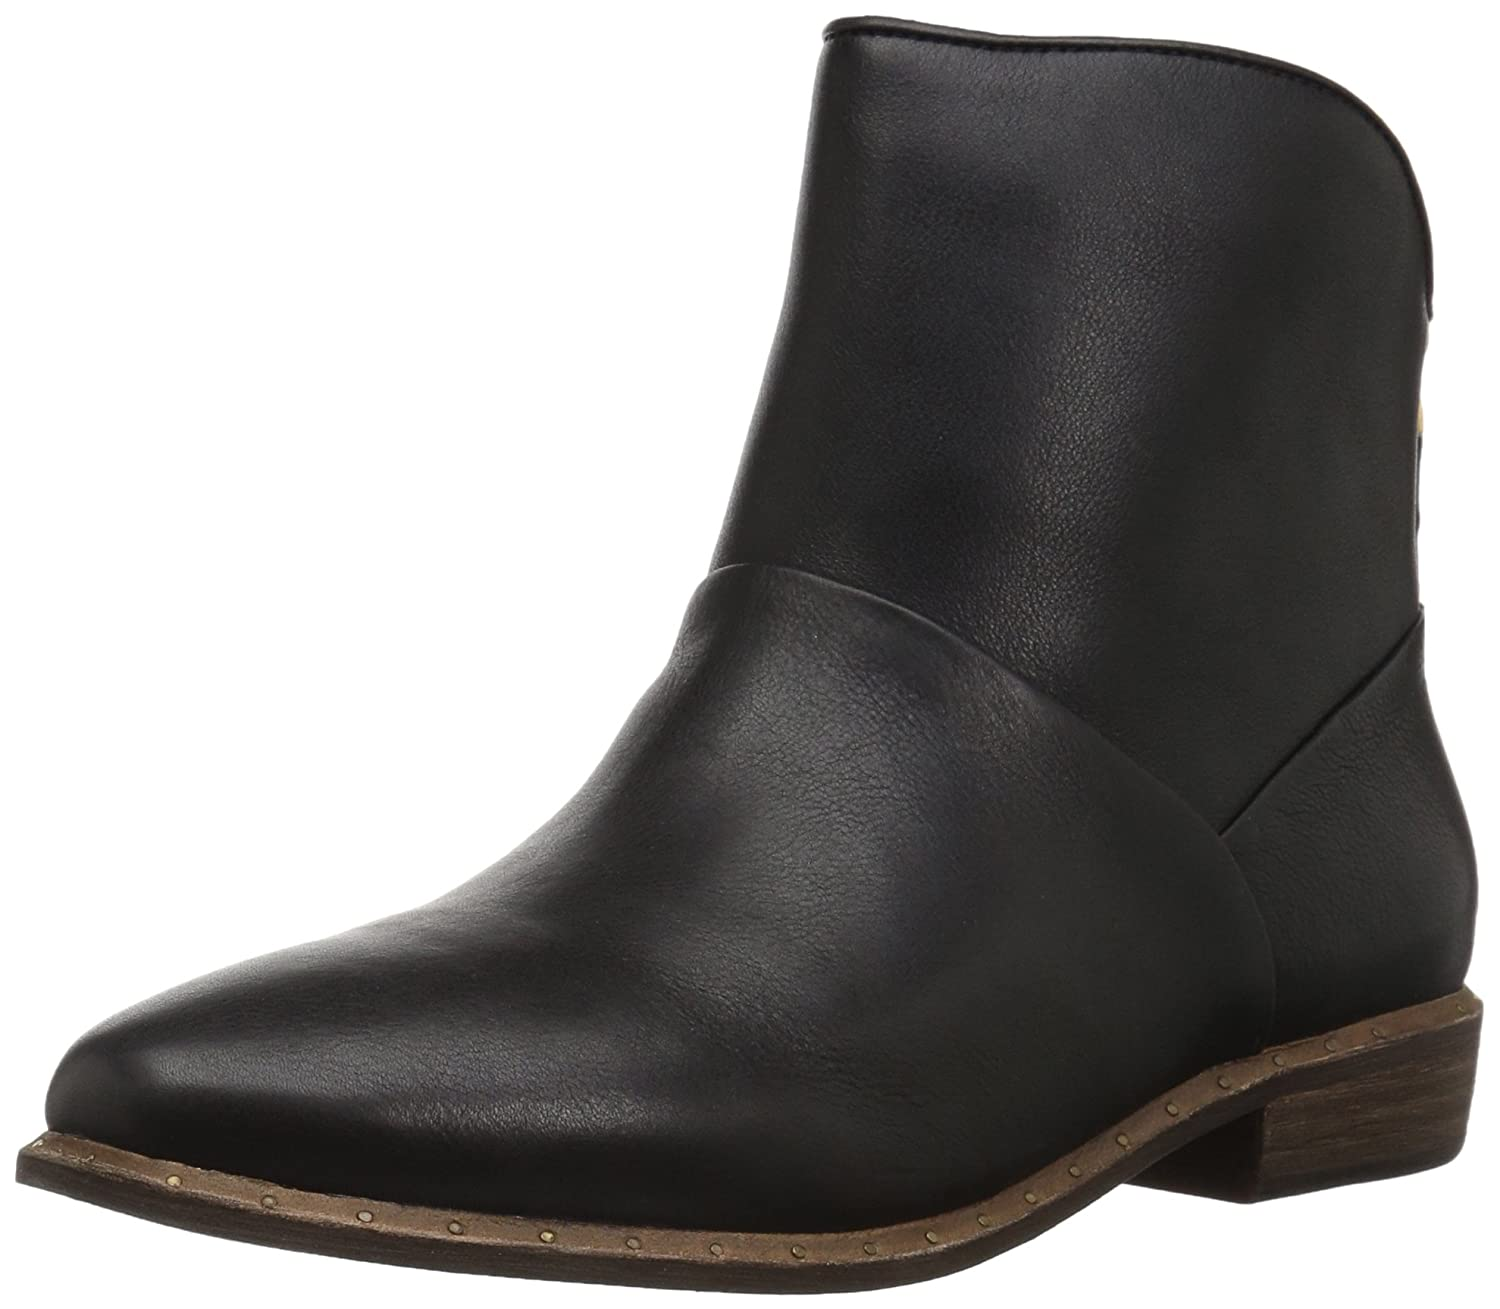 4d529287389 UGG Women's Bruno Ankle Bootie, Black, 5.5 M US: Amazon.co.uk: Shoes ...